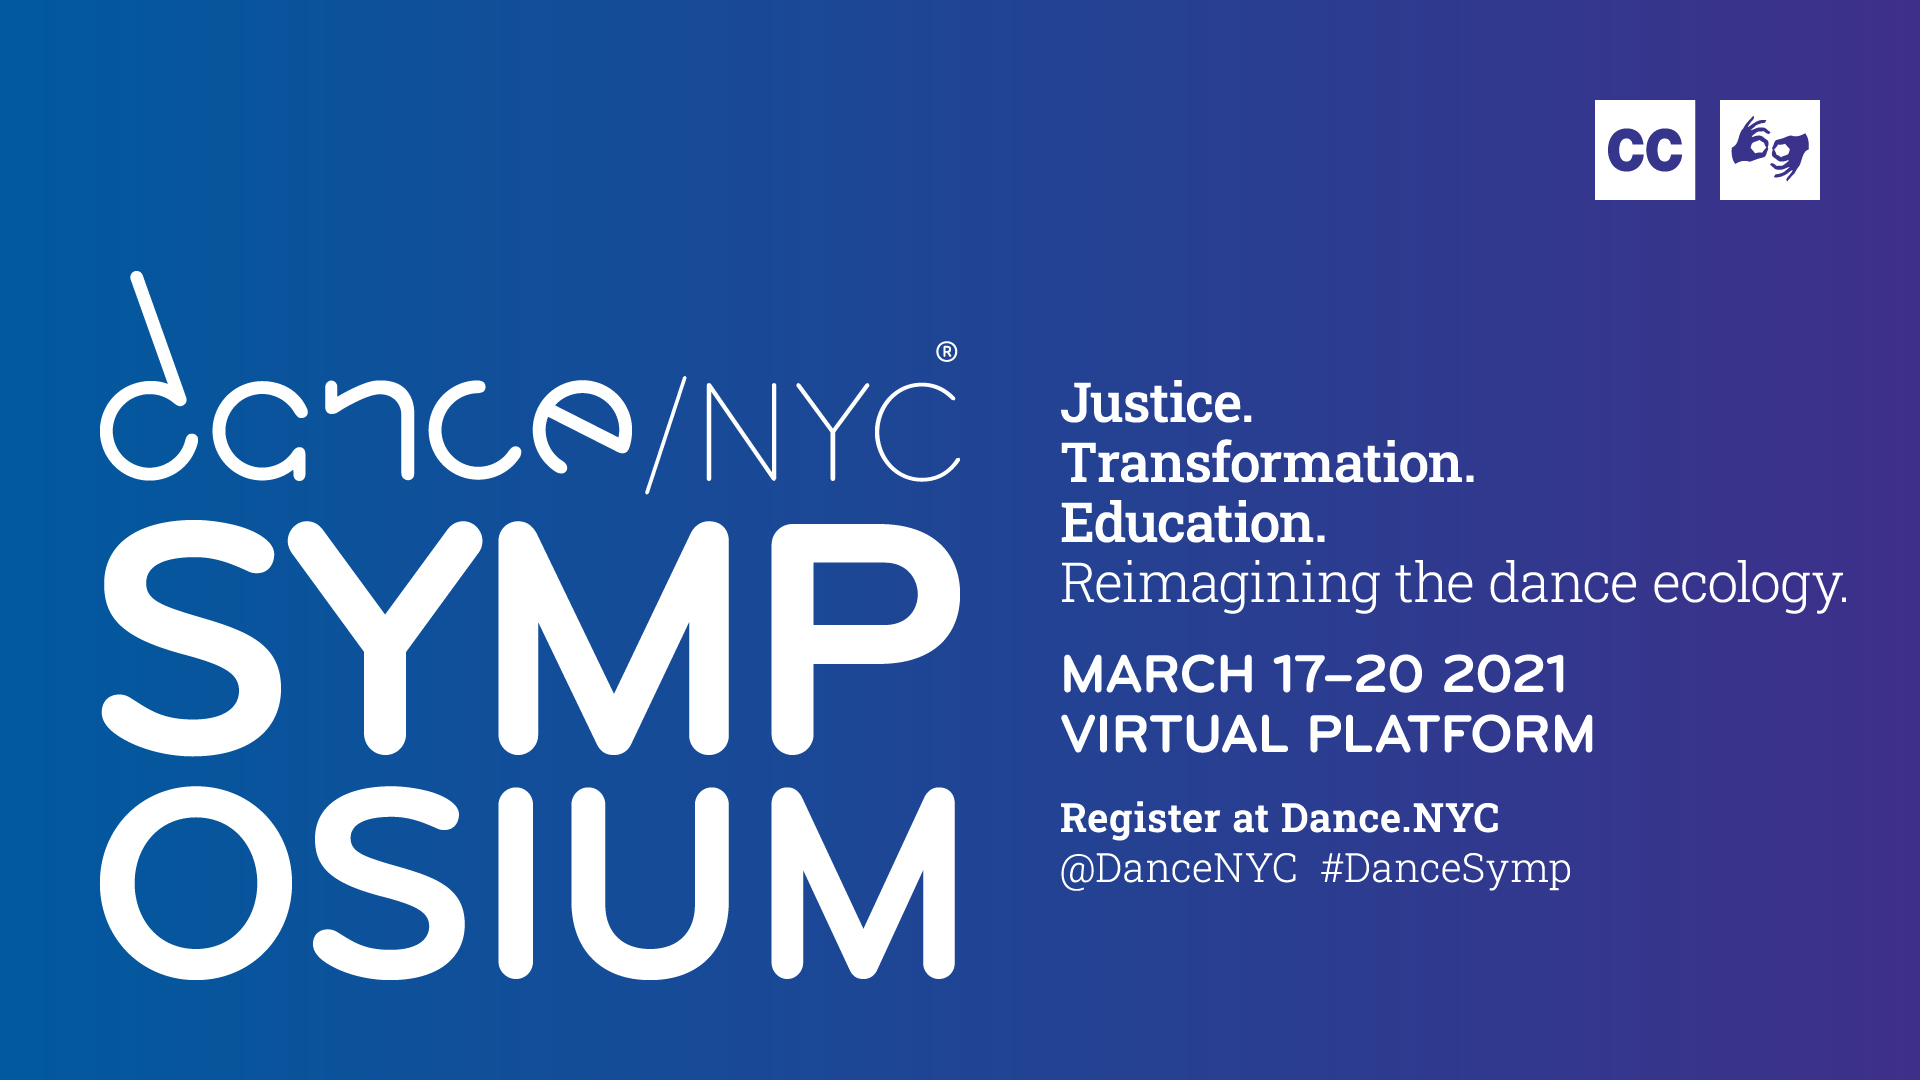 """White text on a blue background reads """"Dance/NYC Symposium. Justice. Transformation. Education. Reimagining the dance ecology. March 17-20, 2021. Virtual platform. Register at Dance.NYC. @DanceNYC #DanceSymp."""" Logos for closed captioning and ASL interpretation are shown."""